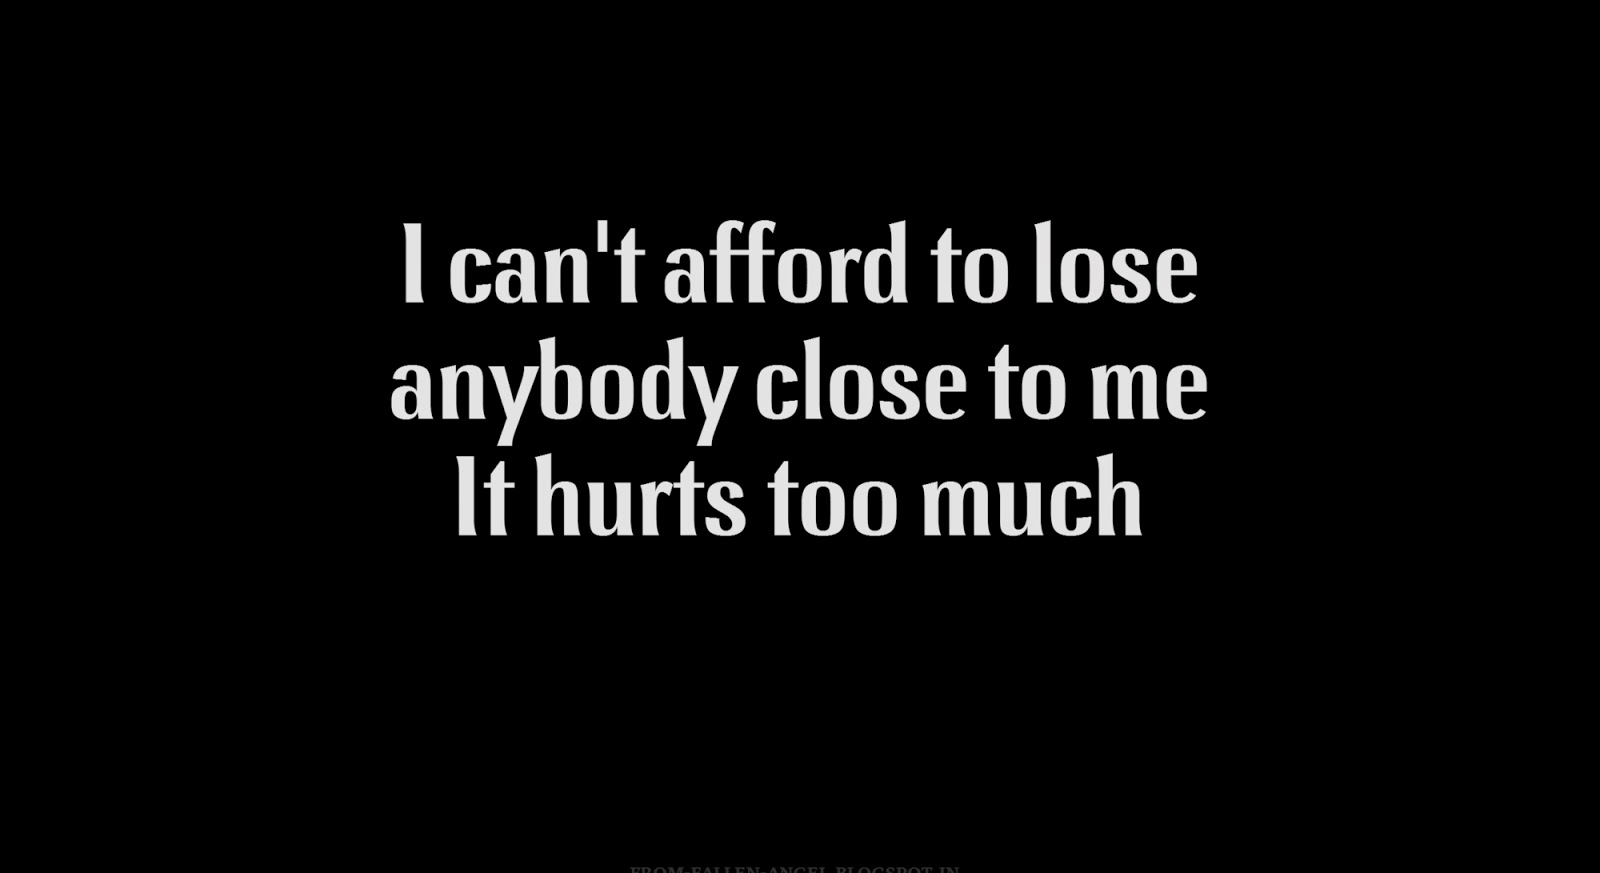 I can't afford to lose anybody close to me. It hurts too much